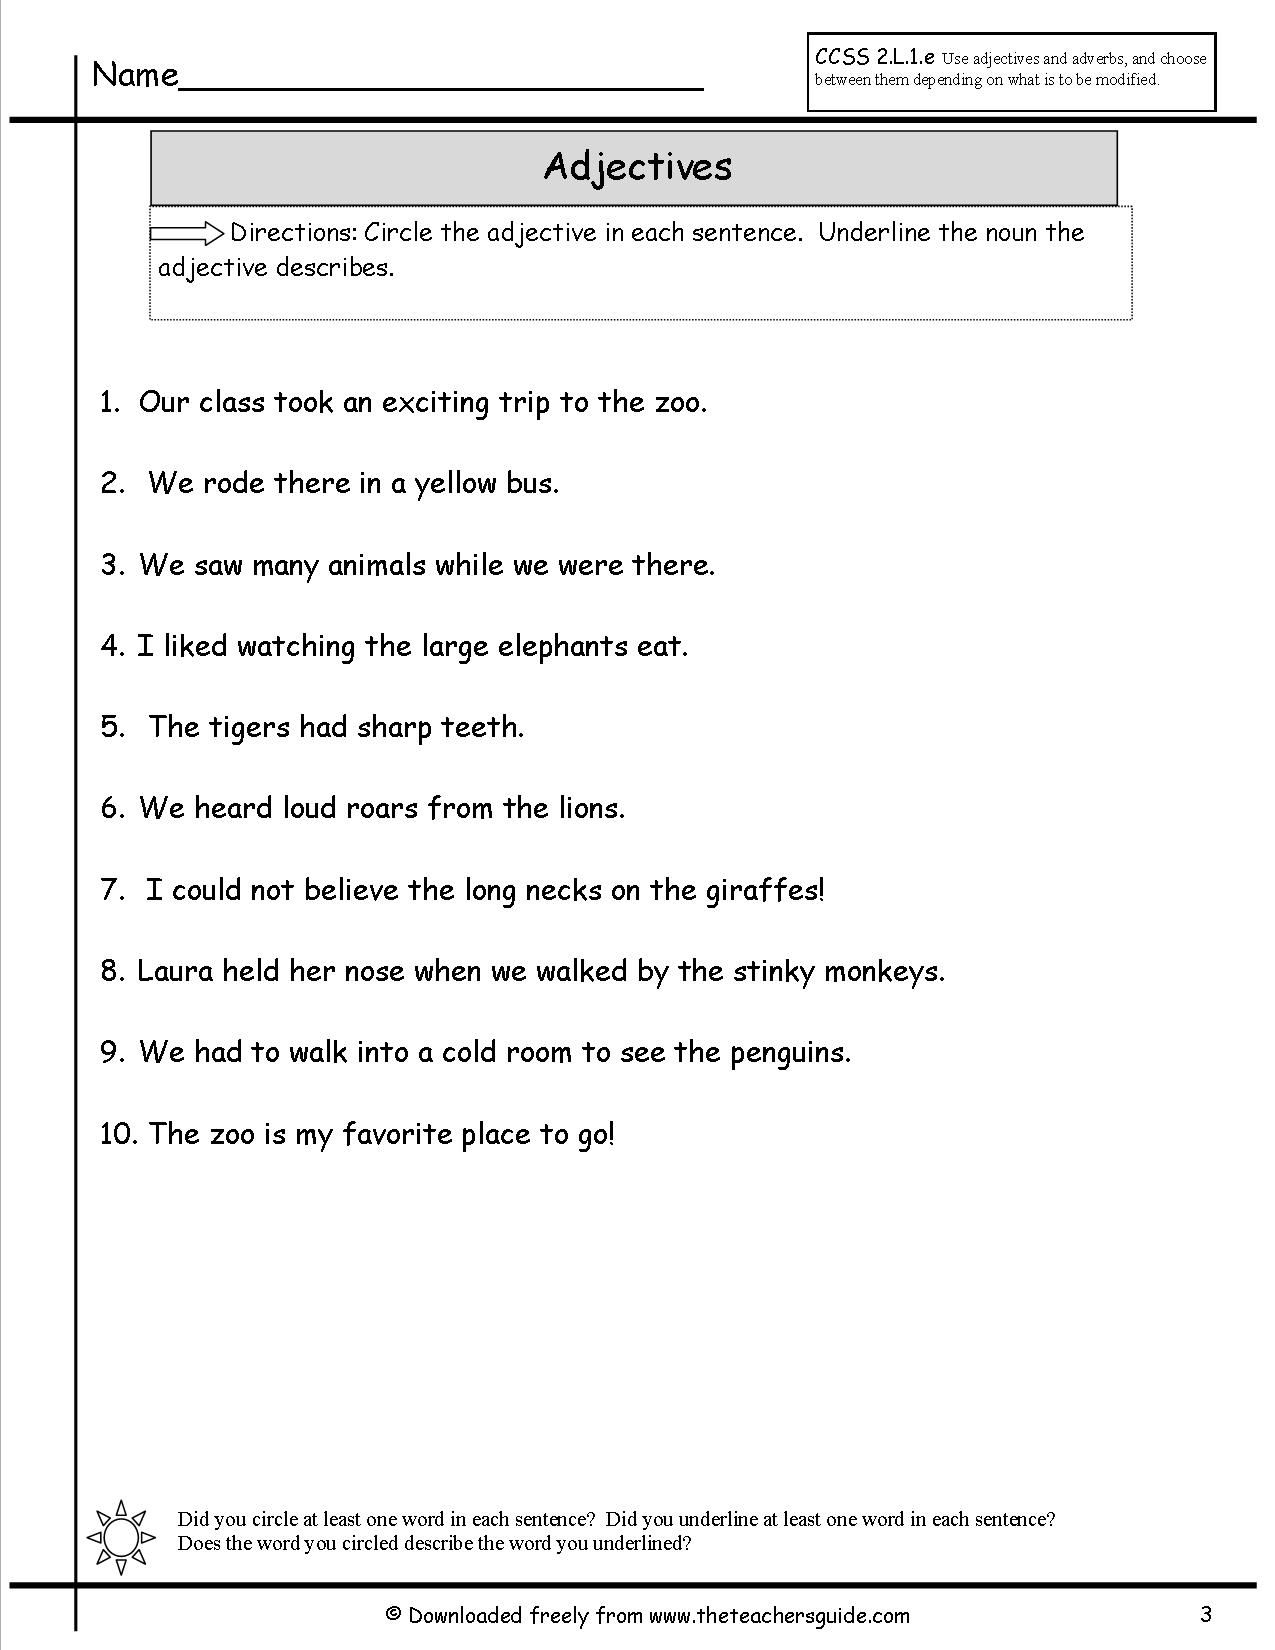 Pin By Pinning Teacher On Teaching Adjectives Adverbs